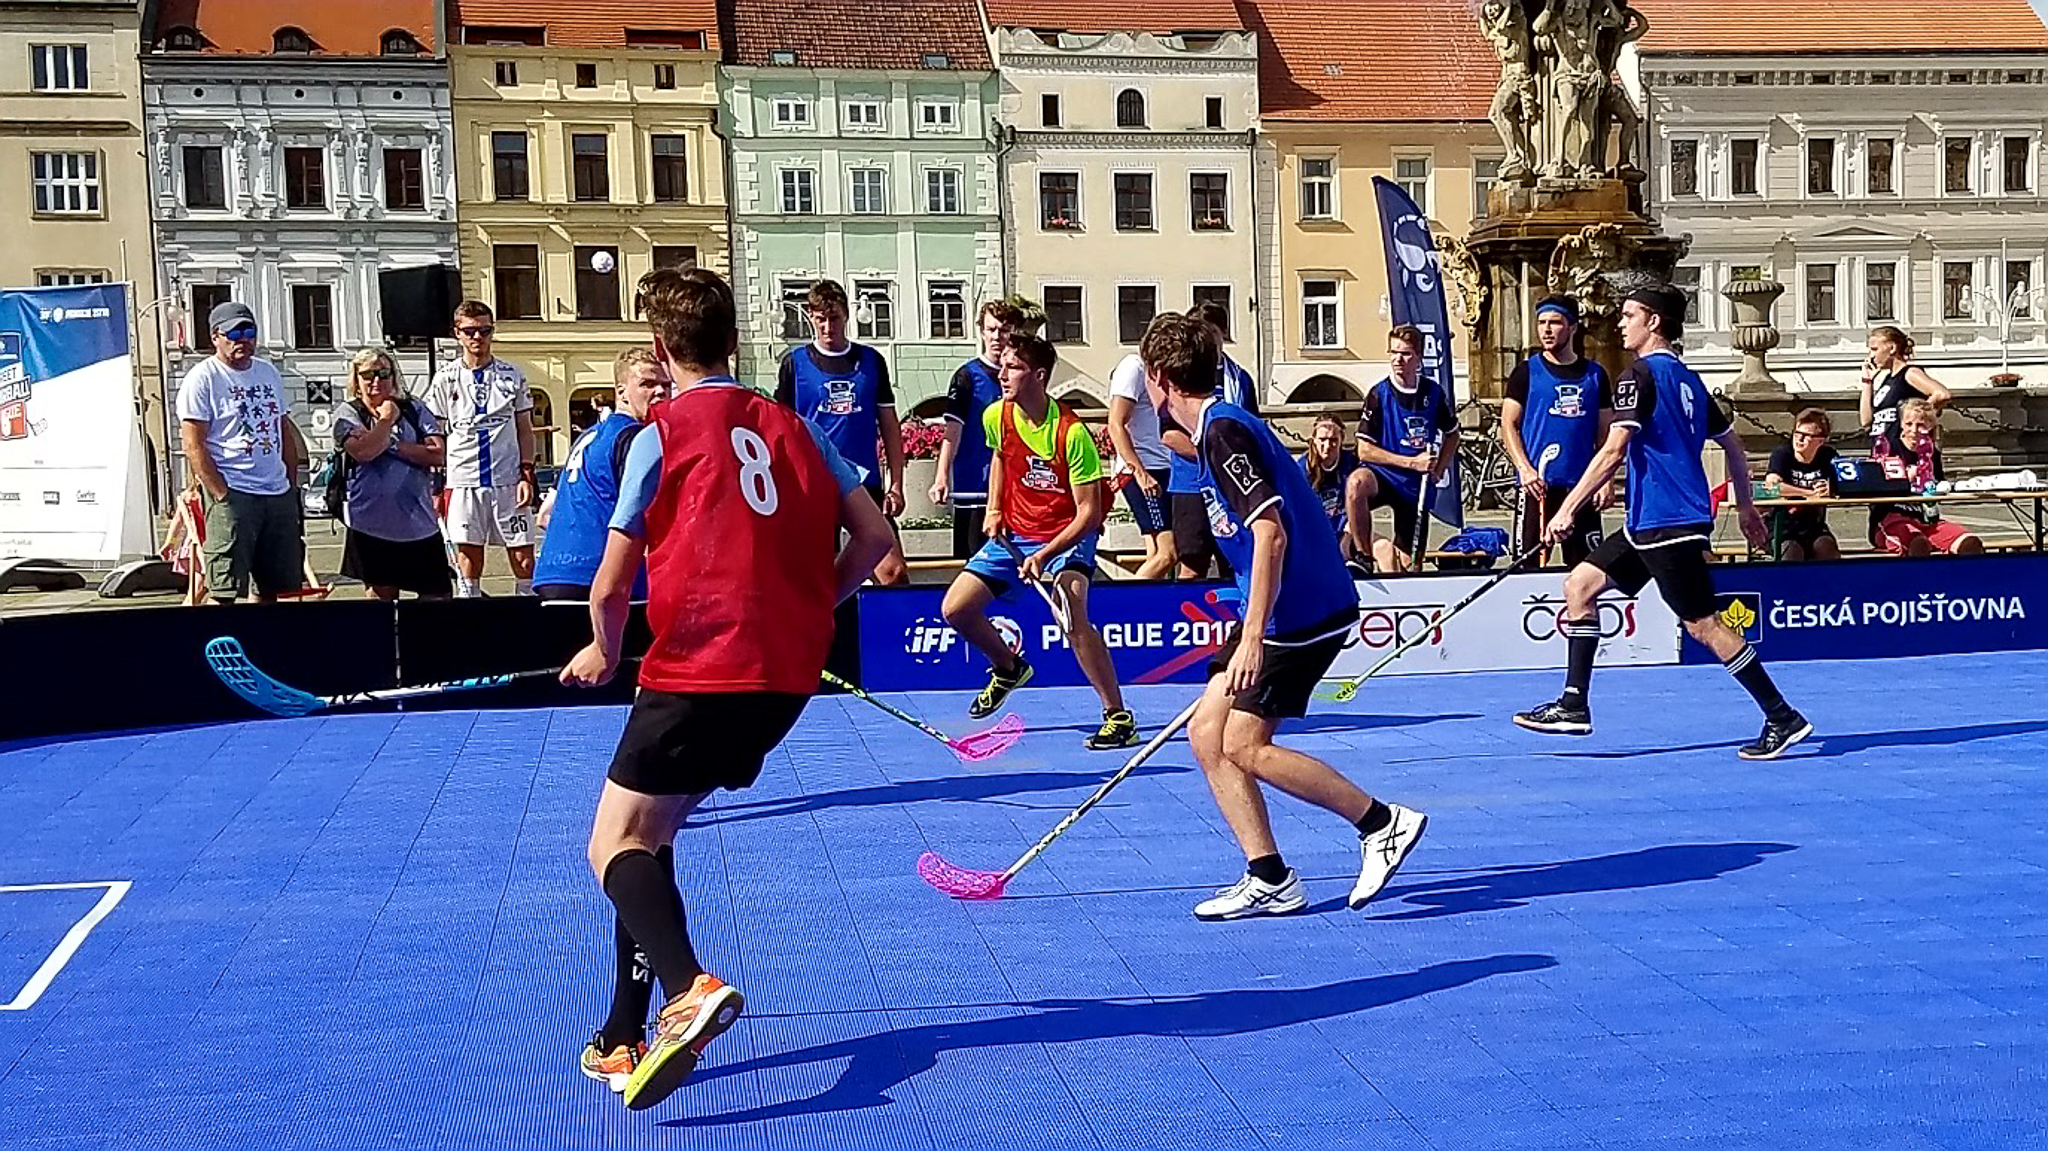 Soccer on the town square